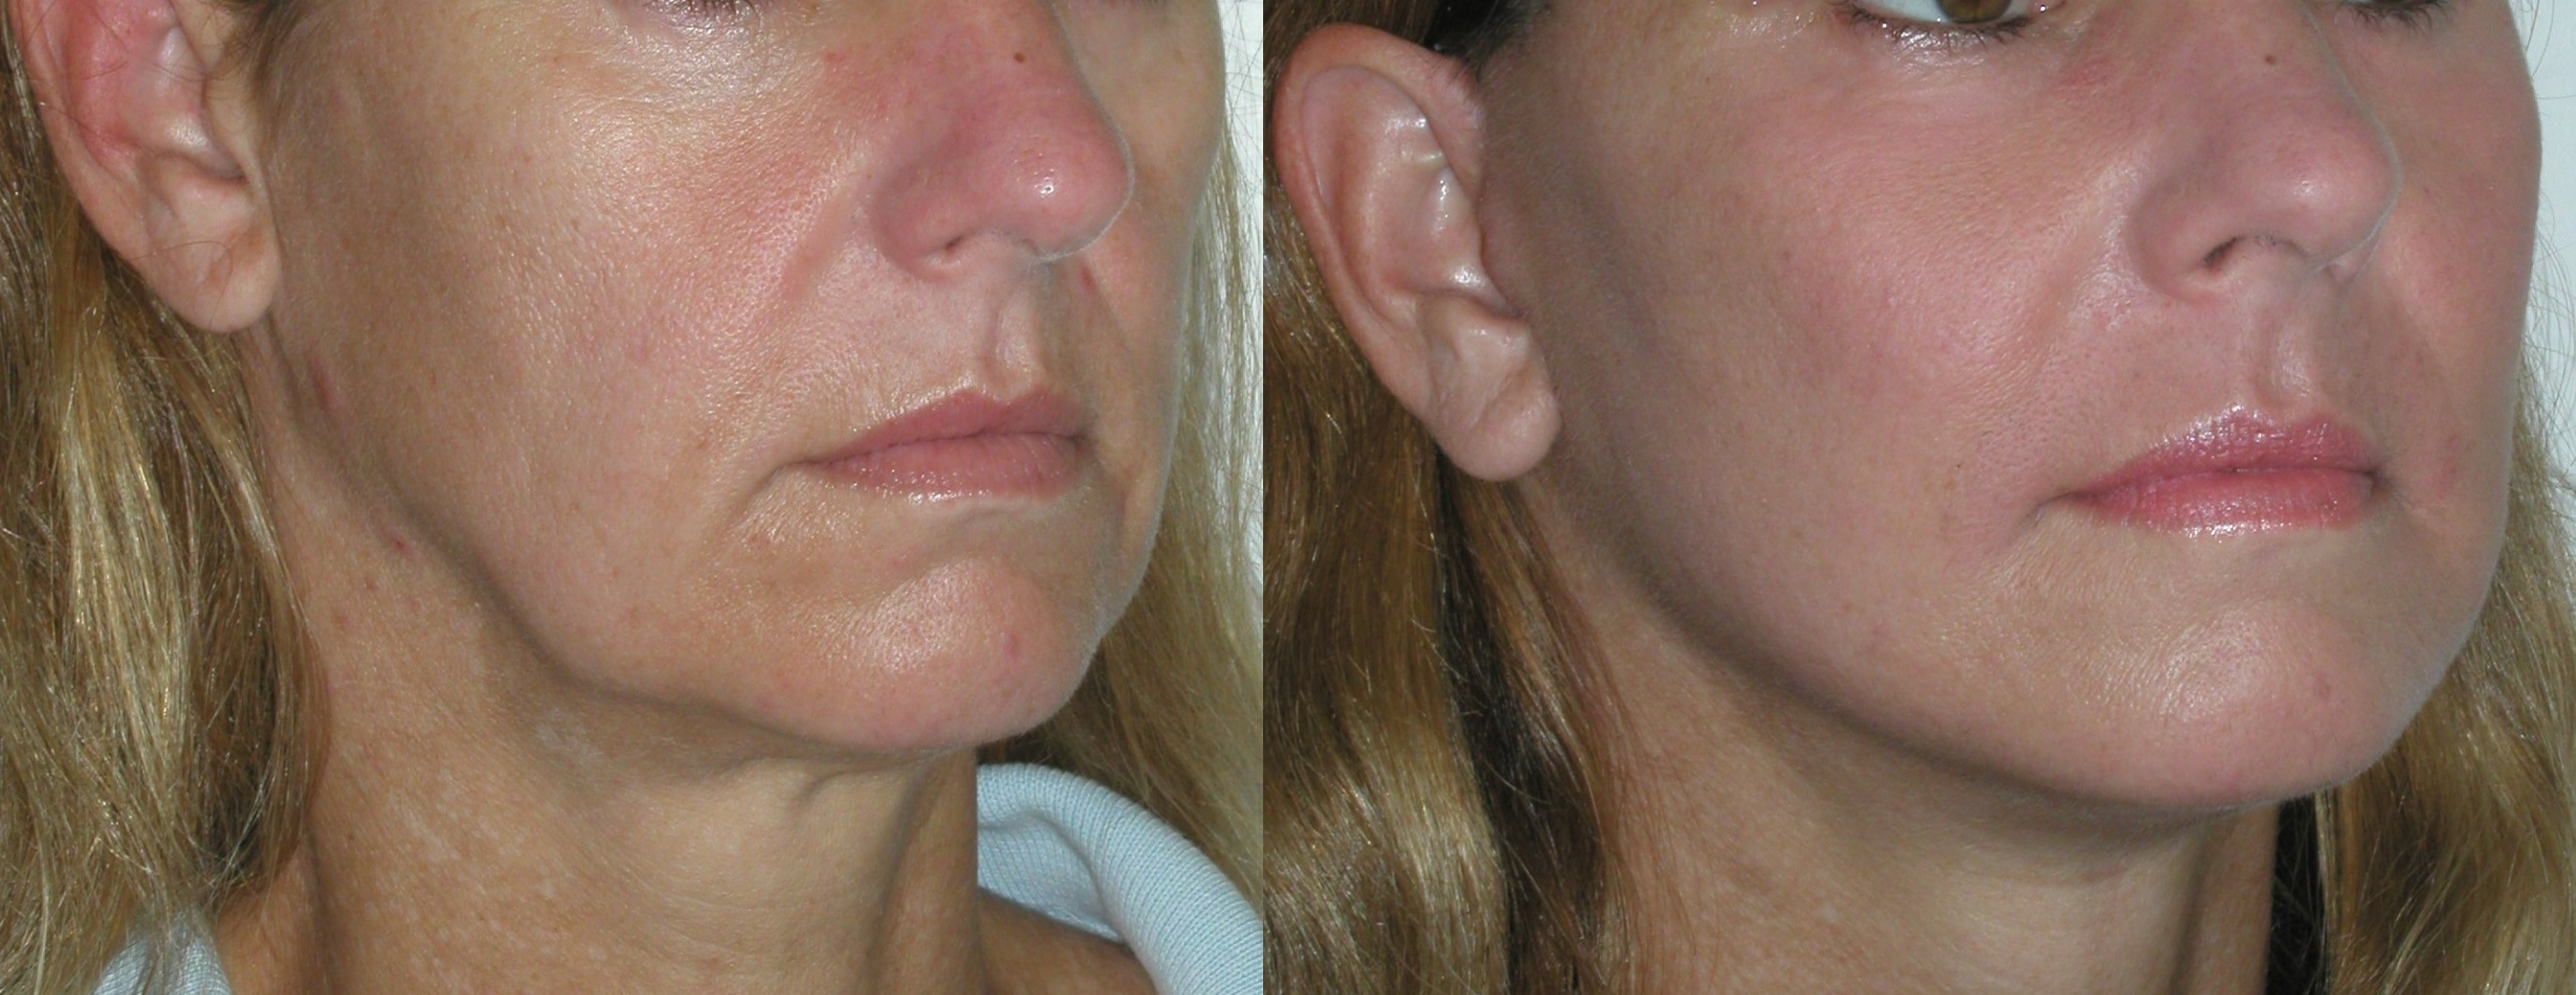 Sagging Jowls | Jaw Line | Castleknock Cosmetic Clinic ...